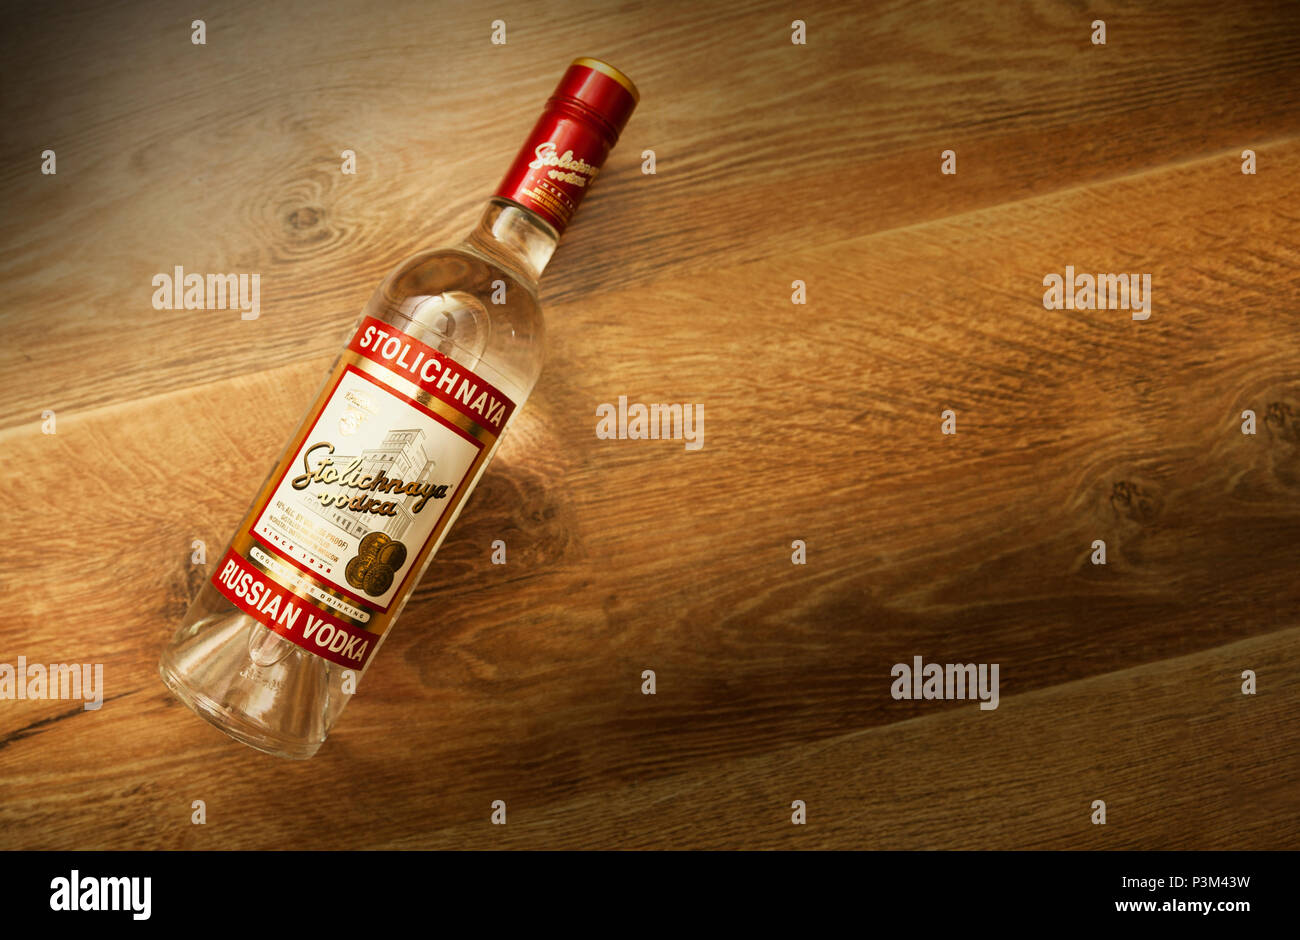 Chisinau, Moldova 18 June 2018: A bottle of Stolichnaya vodka on an wooden background. Russian traditional alcoholic beverage, produced in Russia at C - Stock Image